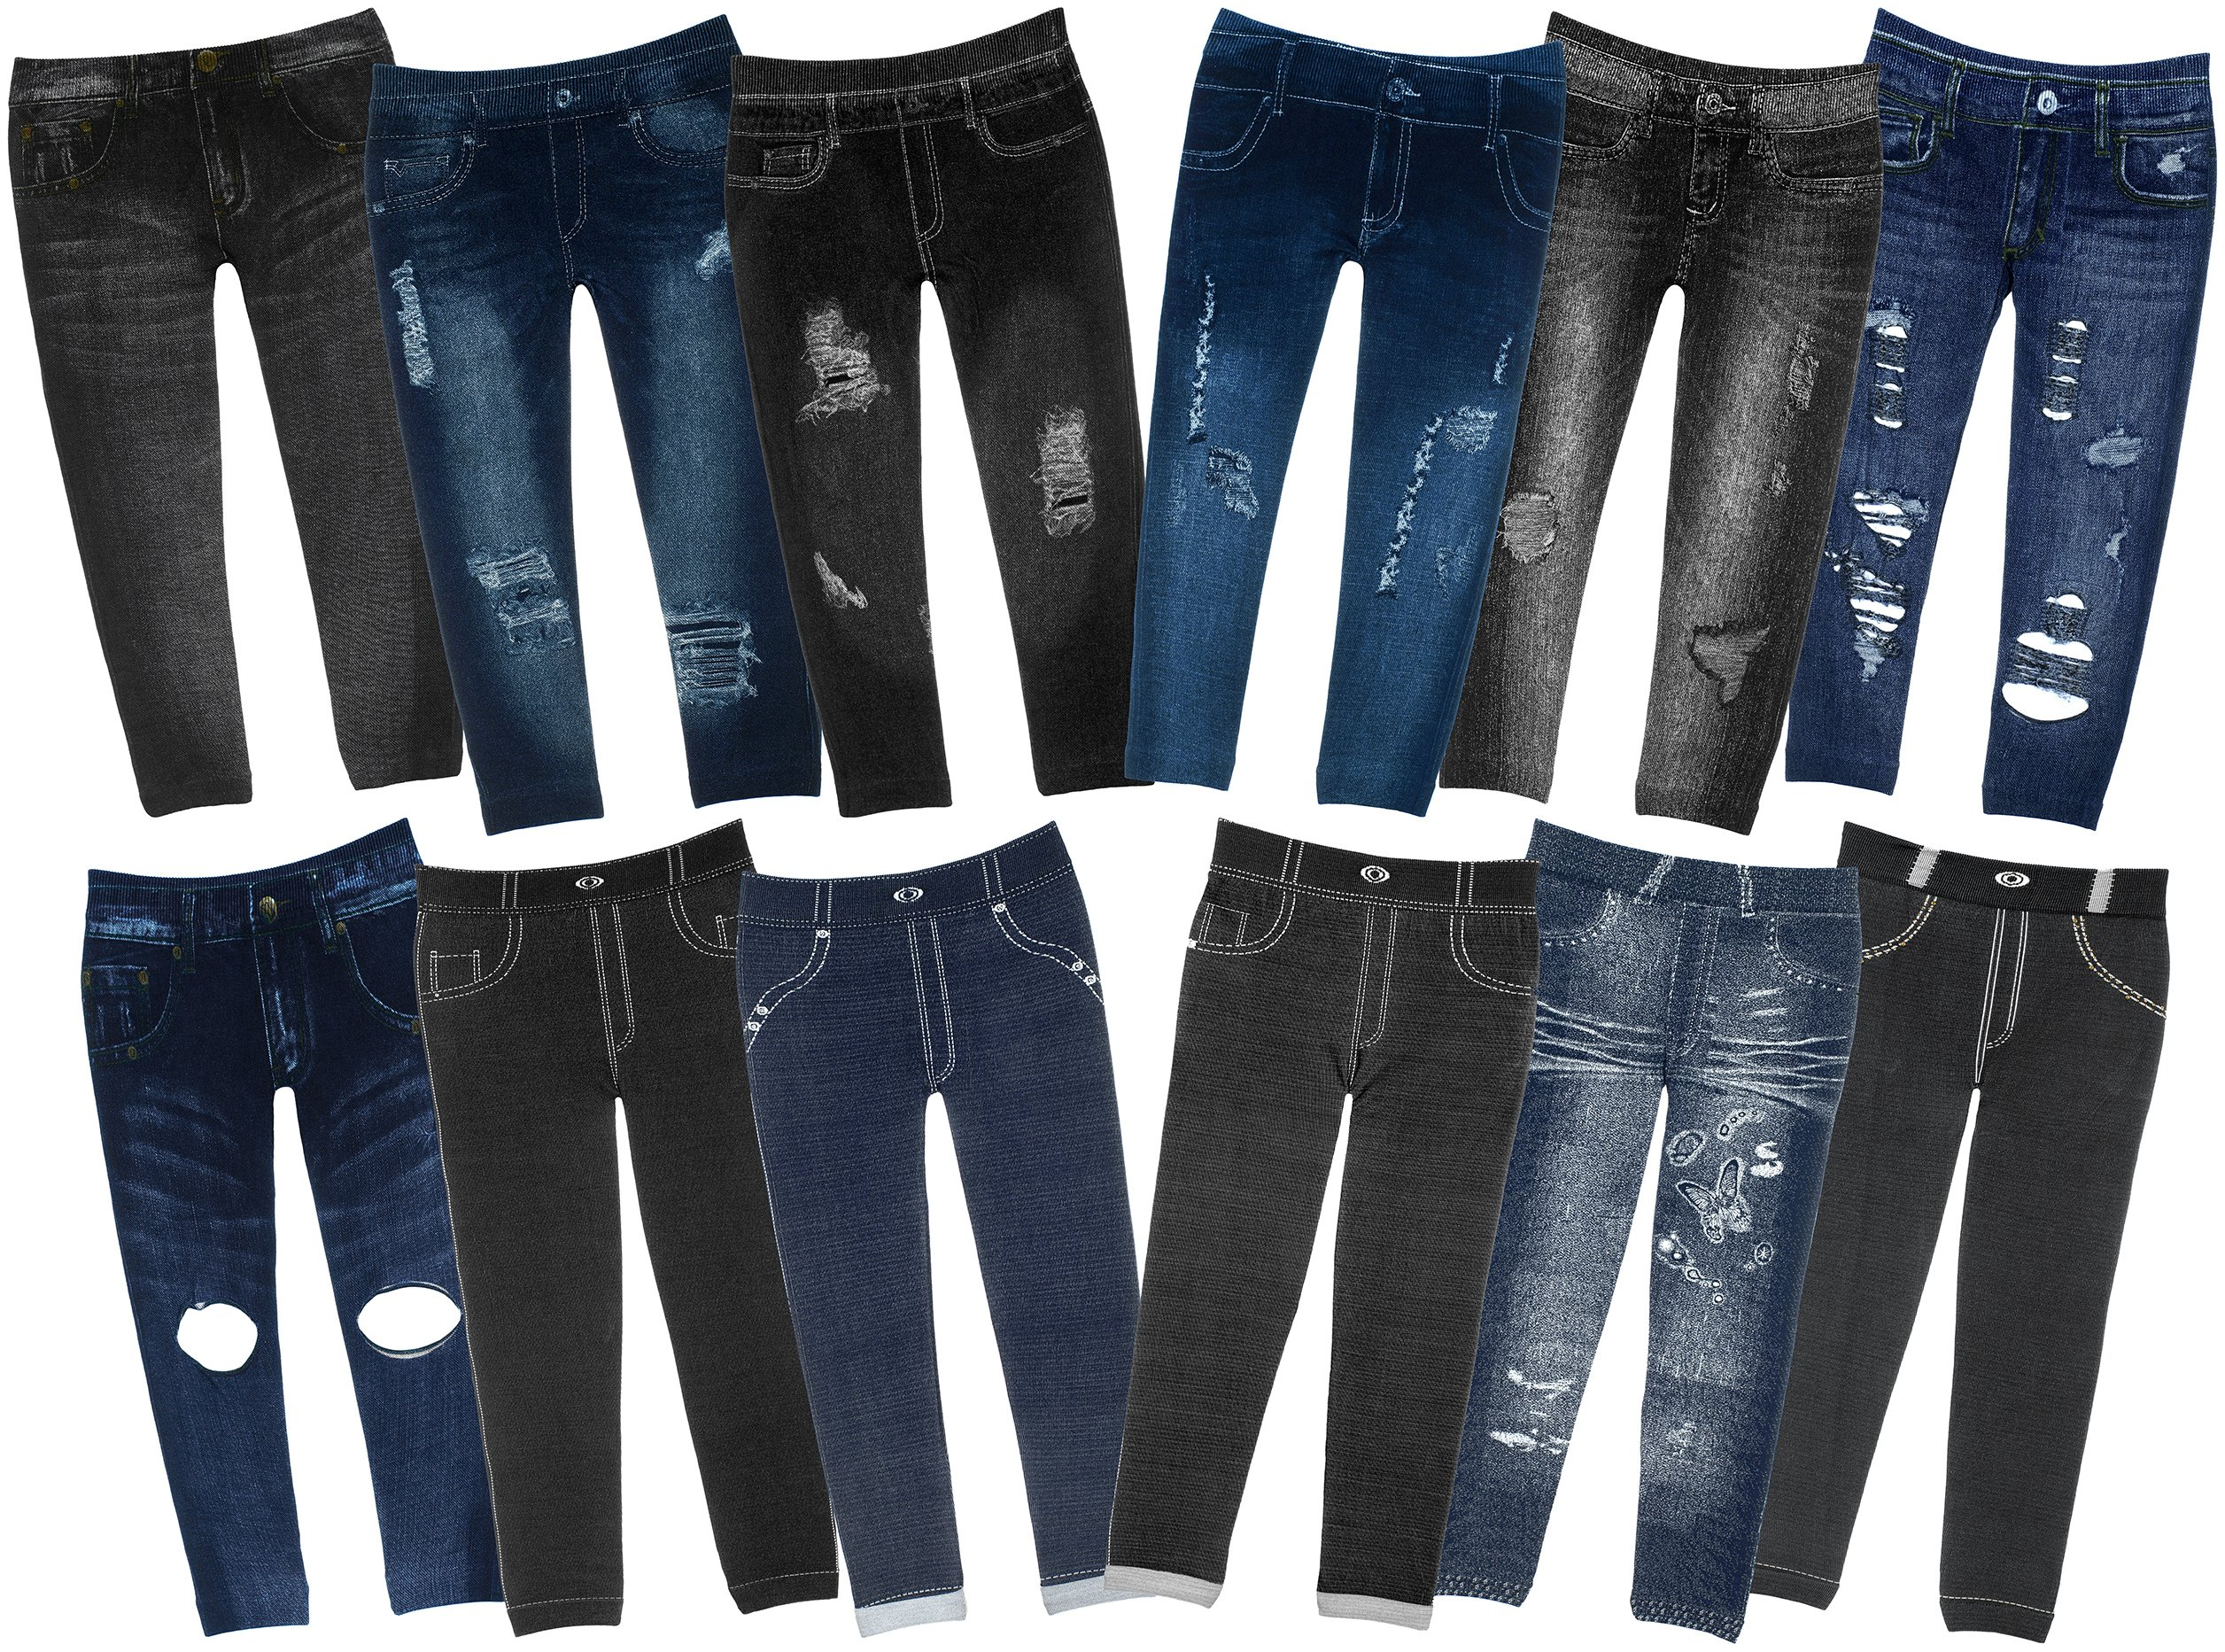 59aa5848028ba Get Quotations · Crush Girl's Jeggings with Sequenced Designs and Fun  Prints 14 Great Styles